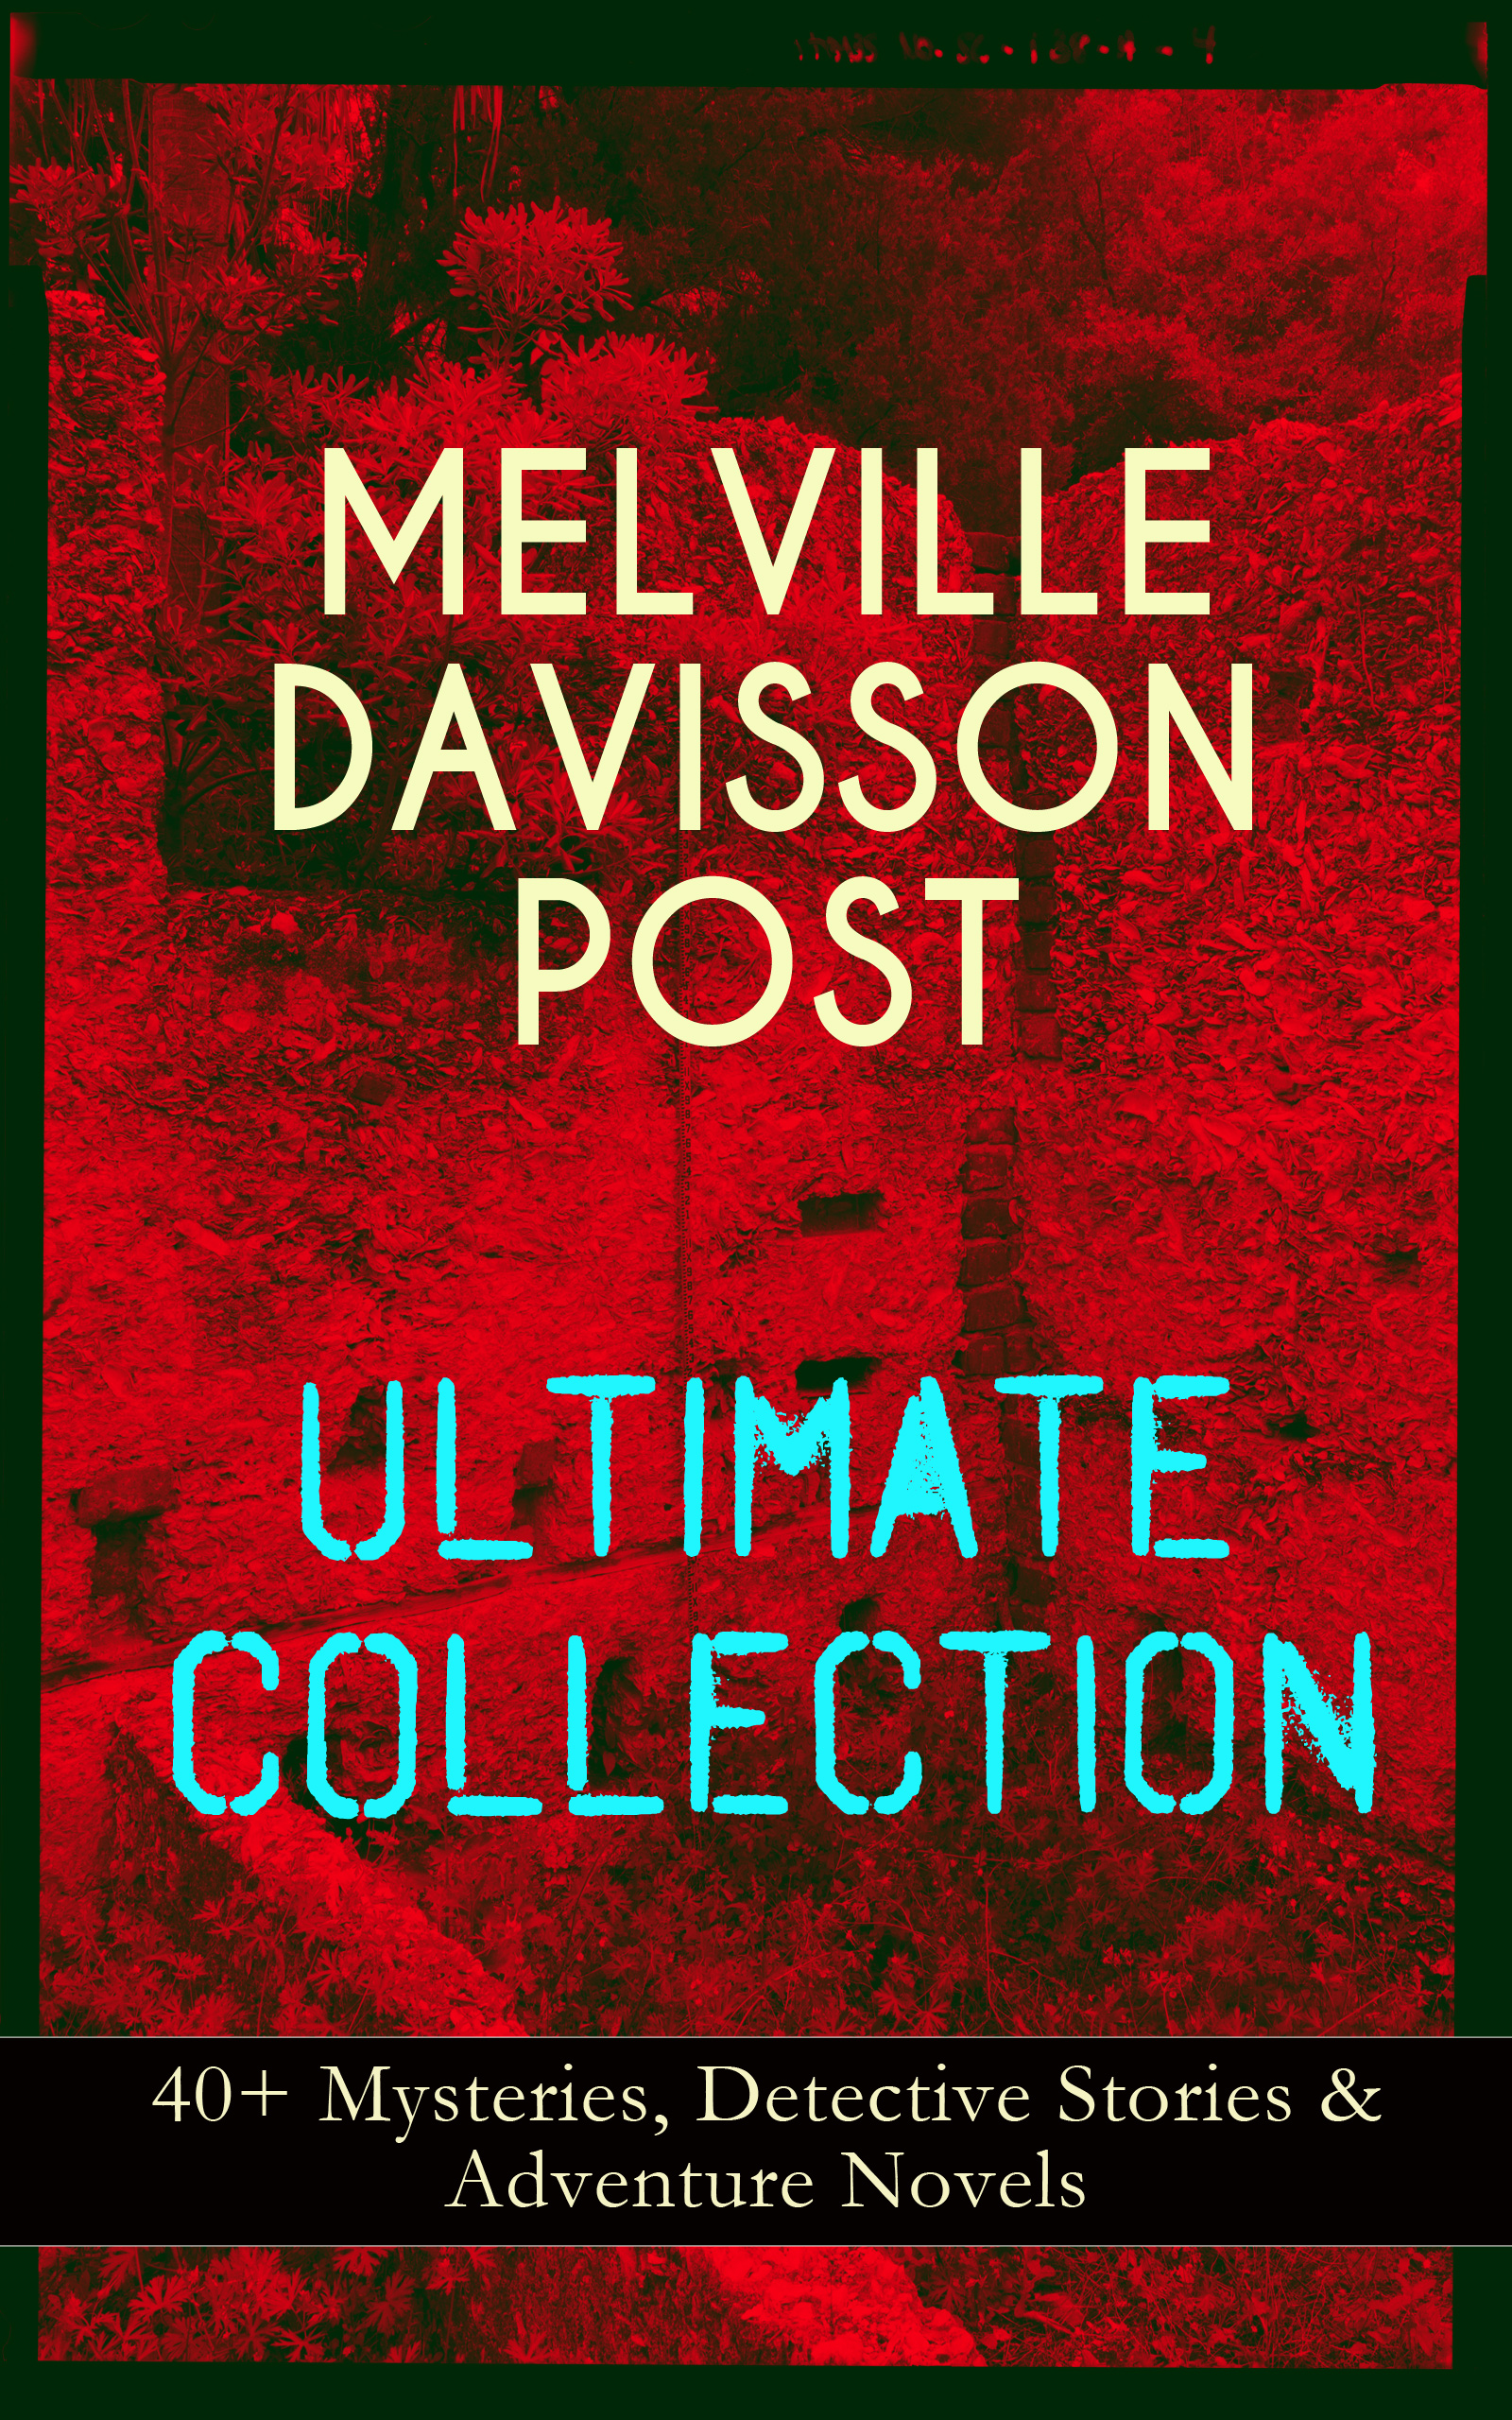 MELVILLE DAVISSON POST Ultimate Collection: 40+ Mysteries, Detective Stories & Adventure Novels